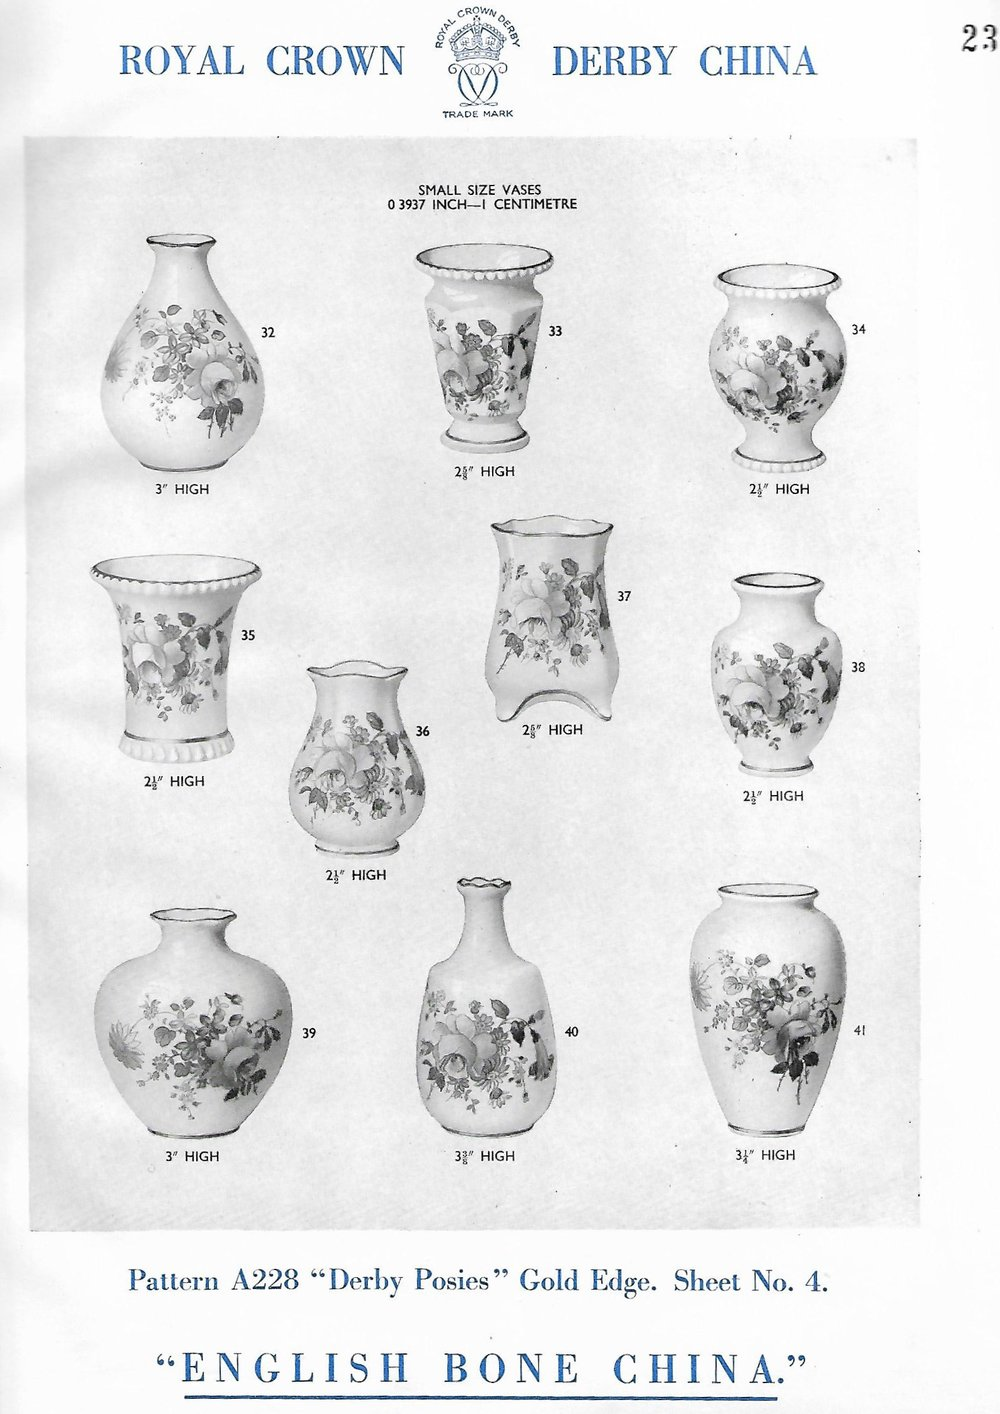 royal-crown-derby-catalogue-page-23